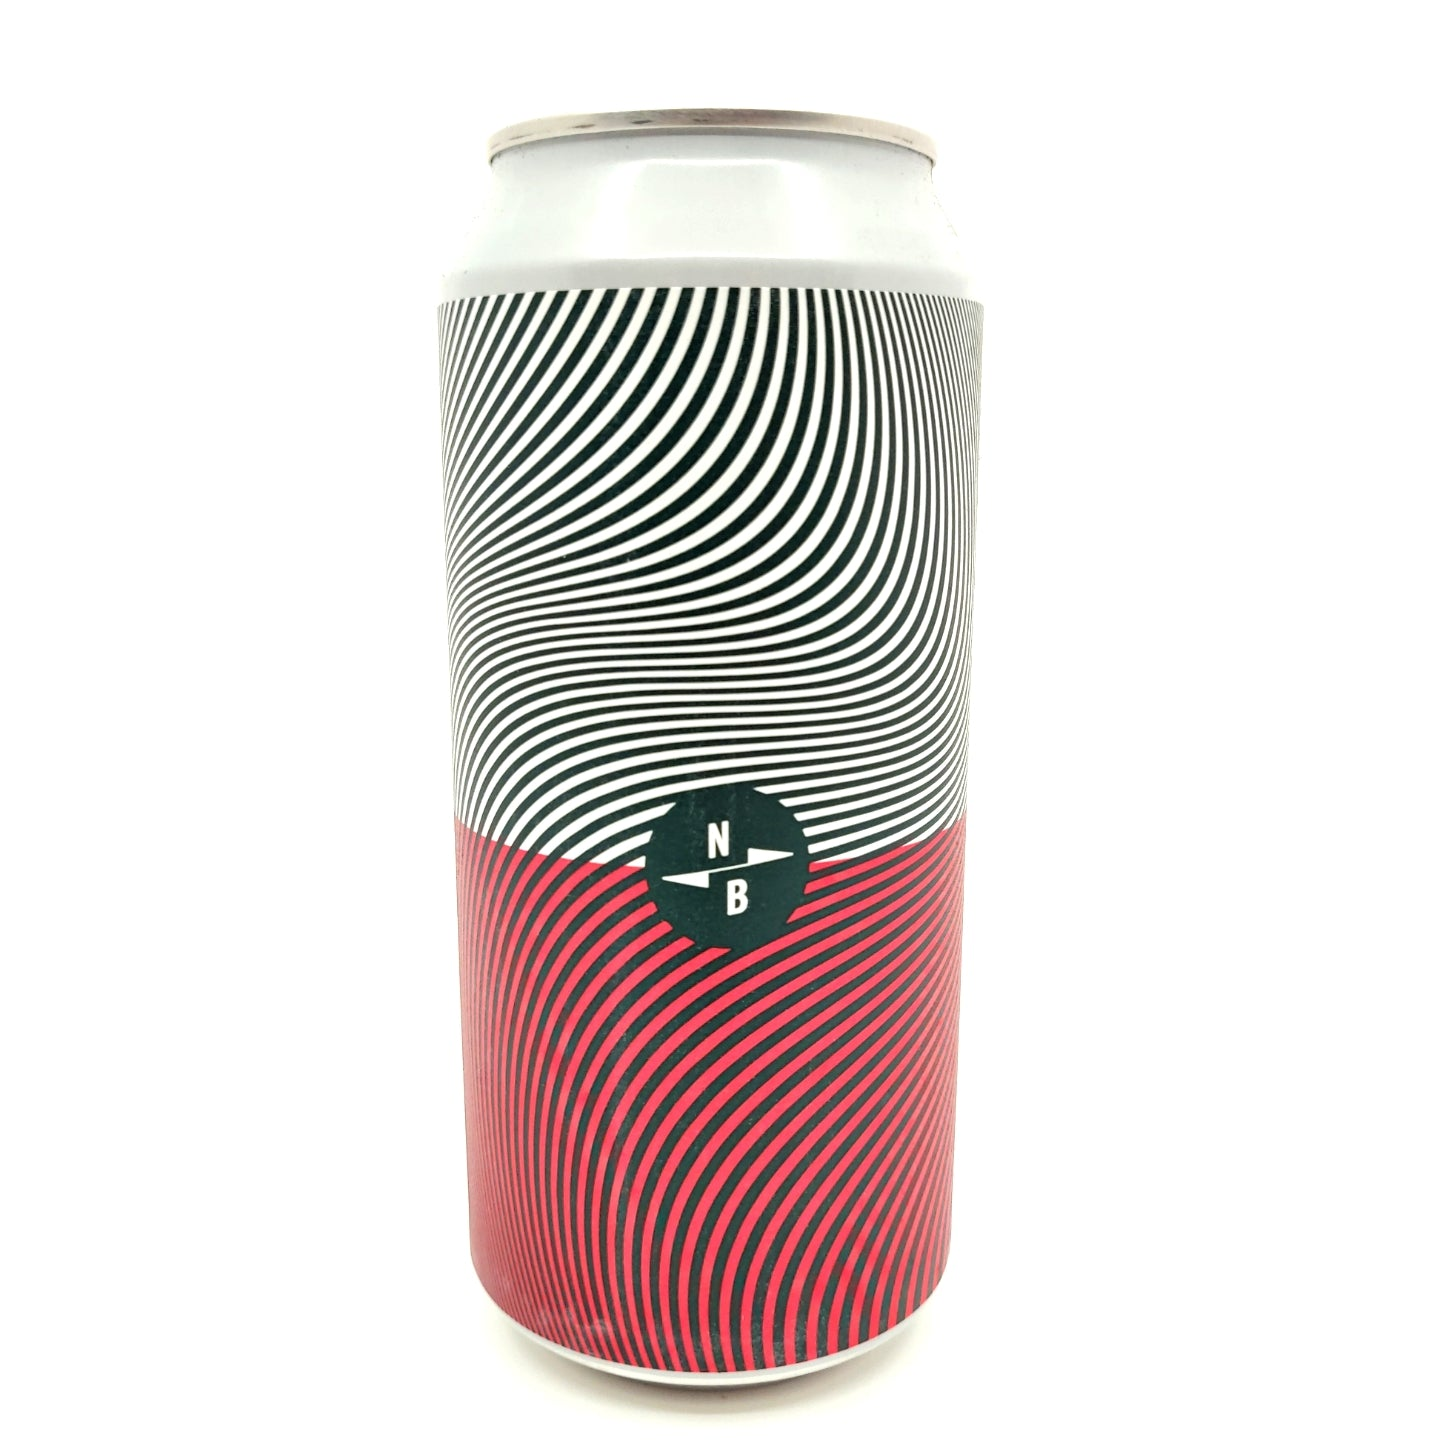 North Brewing Co x Browar Stu Mostow Triple Fruited Gose White Guava & Raspberry 4.8% (440ml can)-Hop Burns & Black